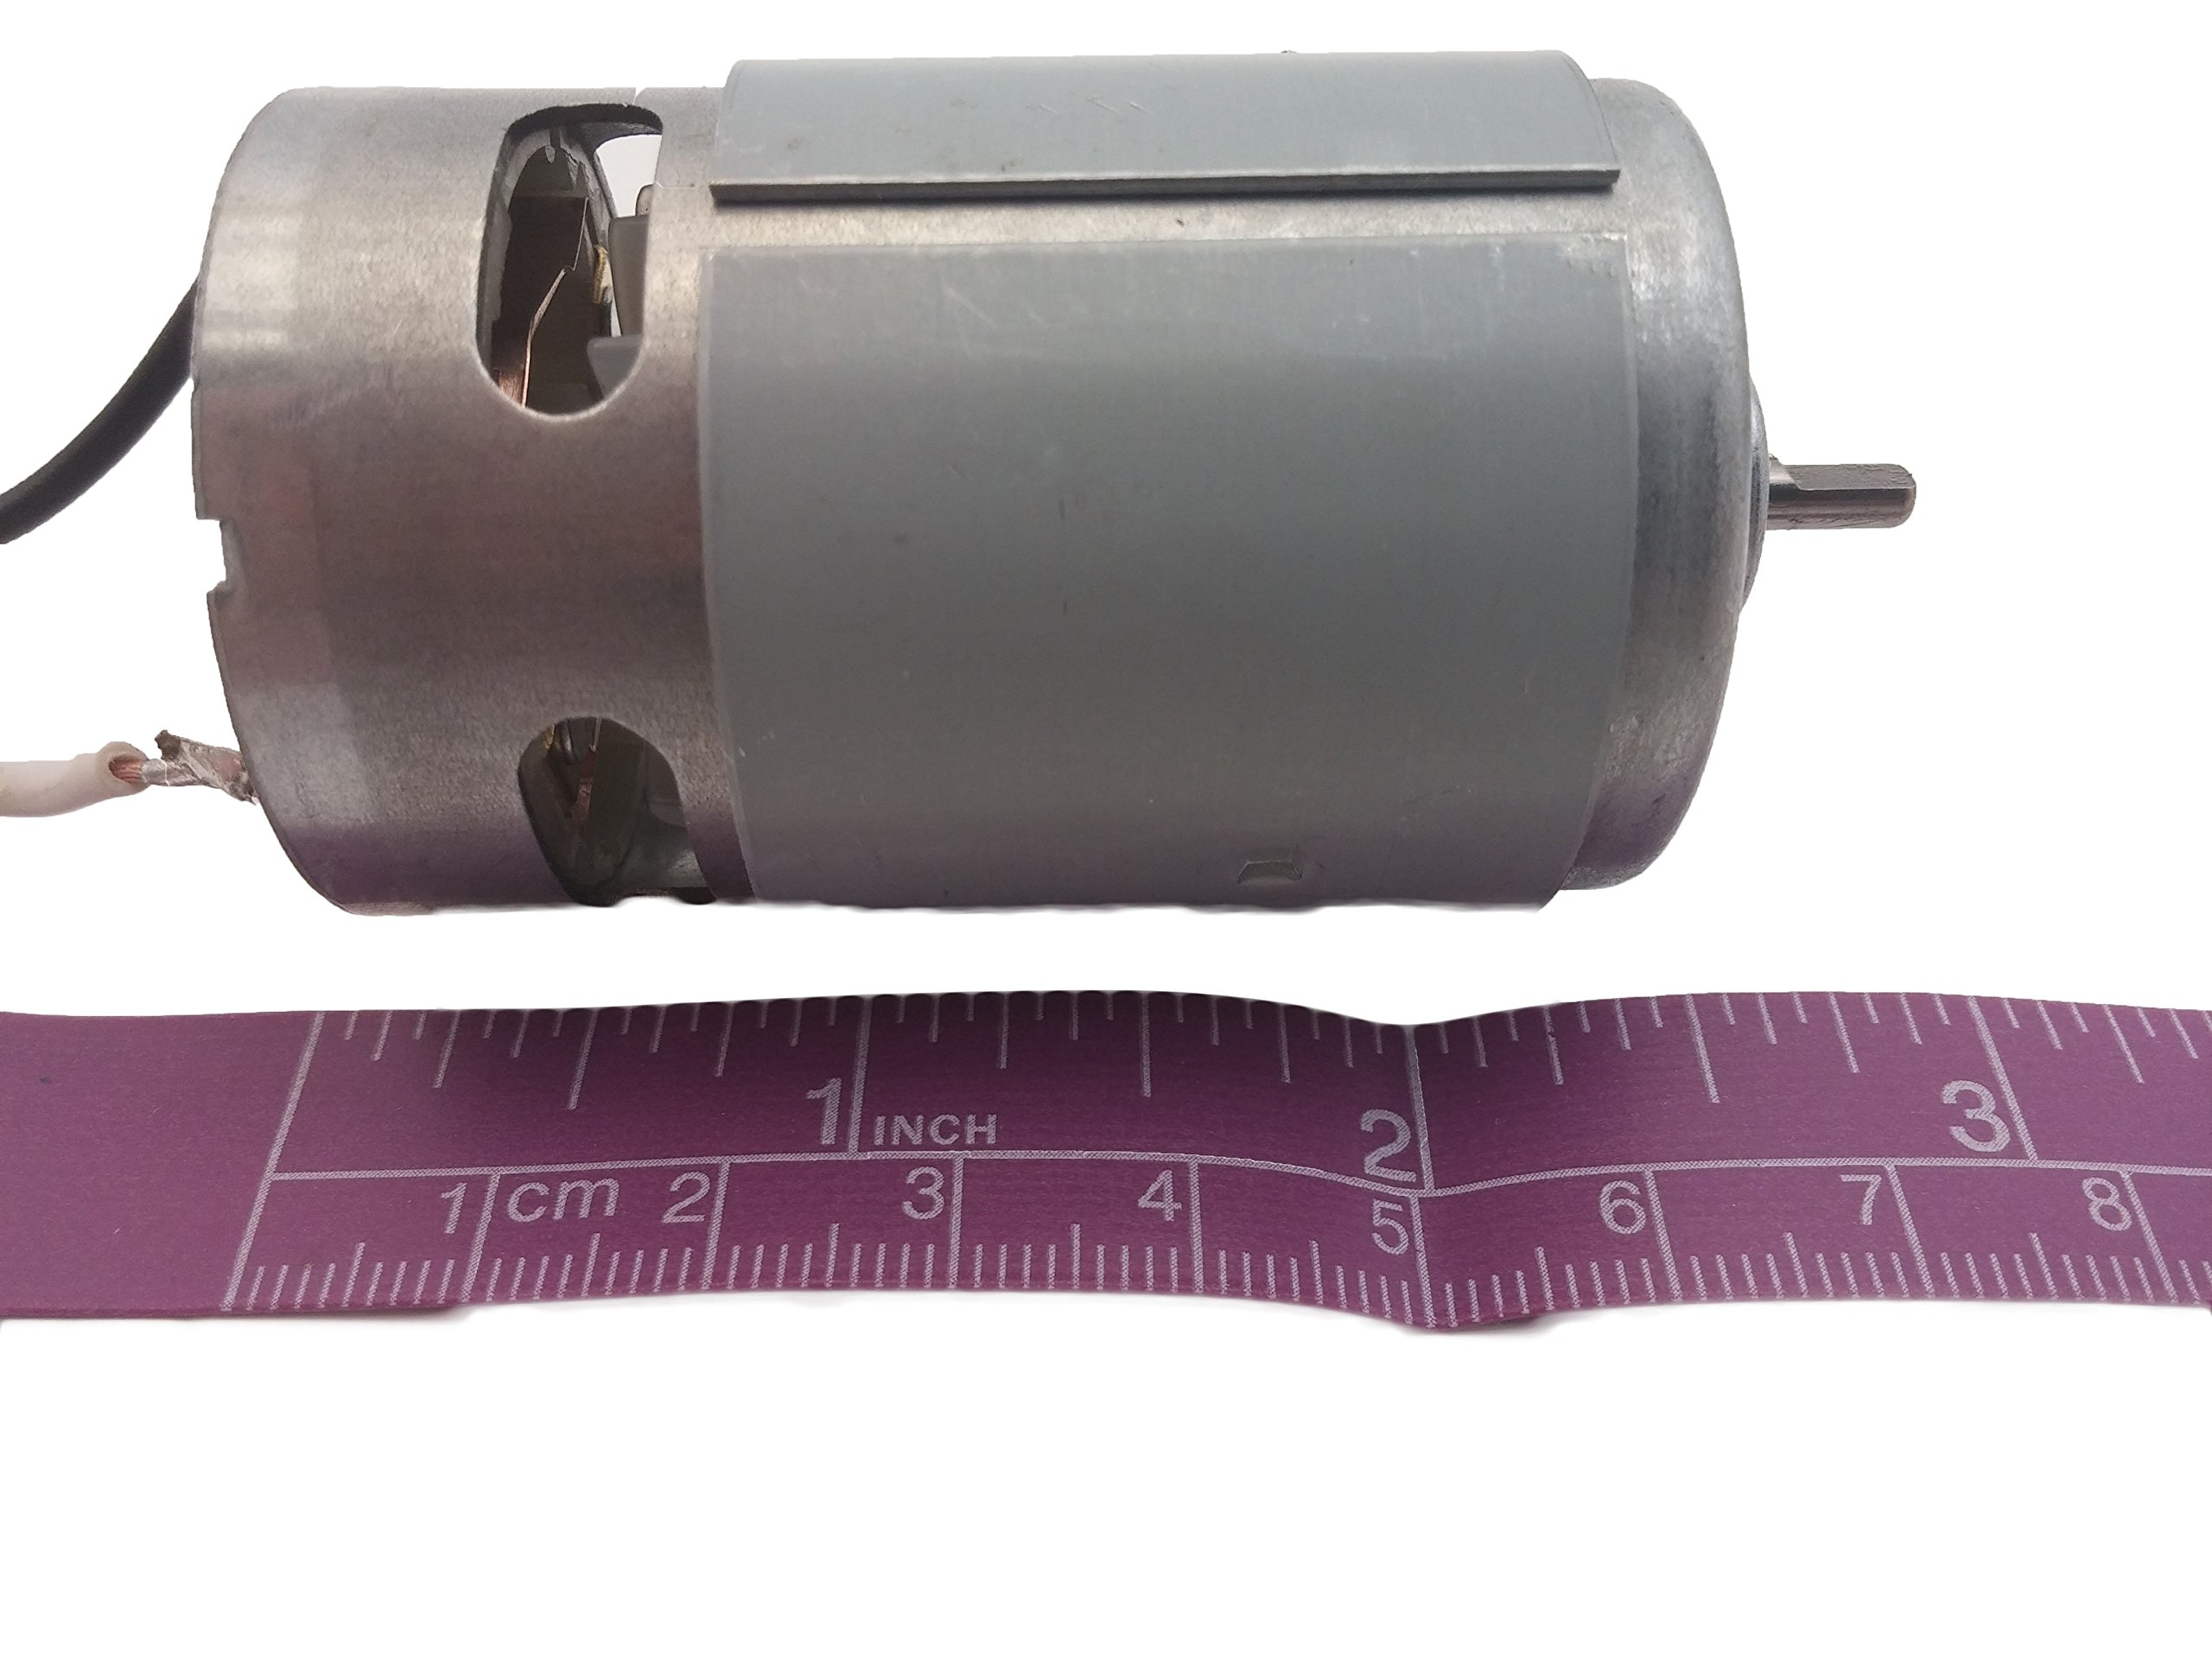 RS-550s 18v (6v - 24v) DC Motor - High Power & Torque for DIY Electric/Electronic Projects, Drills, Robots, RC Vehicals, Remote Controlled Cars/Robot, Saw Repair/Replacement Engine & More